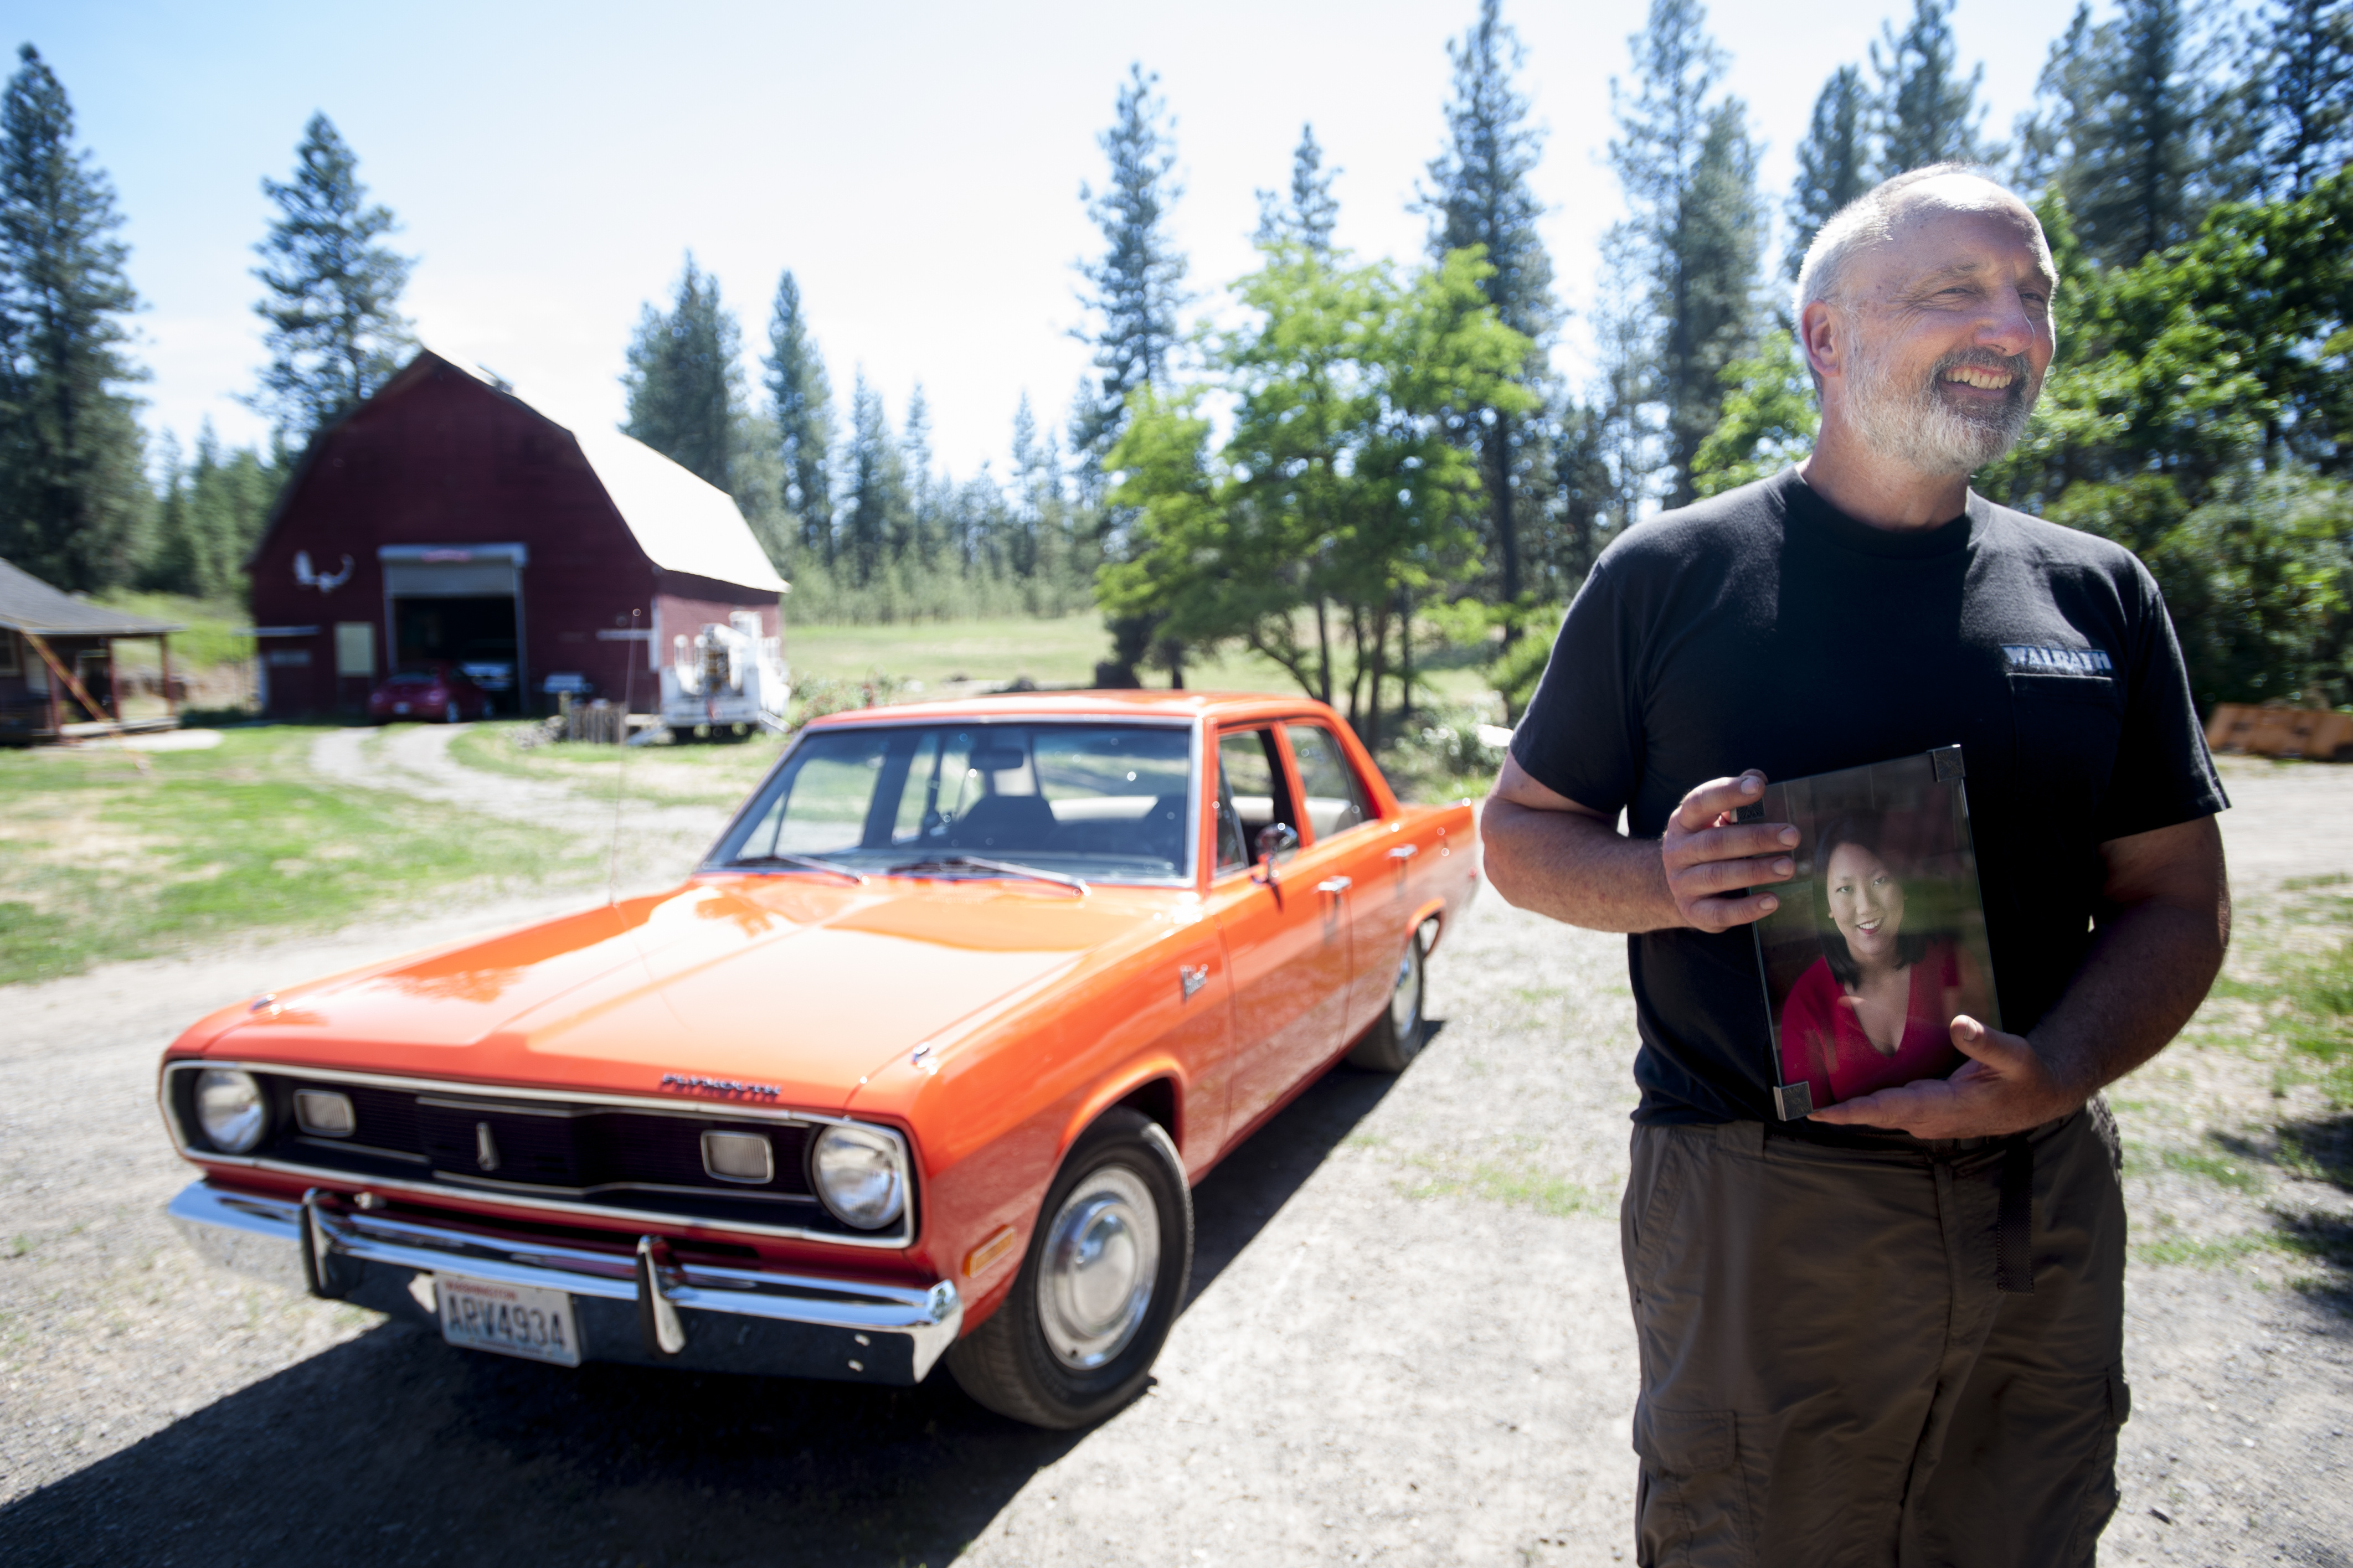 Restoring \'72 Plymouth Valiant was family affair | The Spokesman-Review